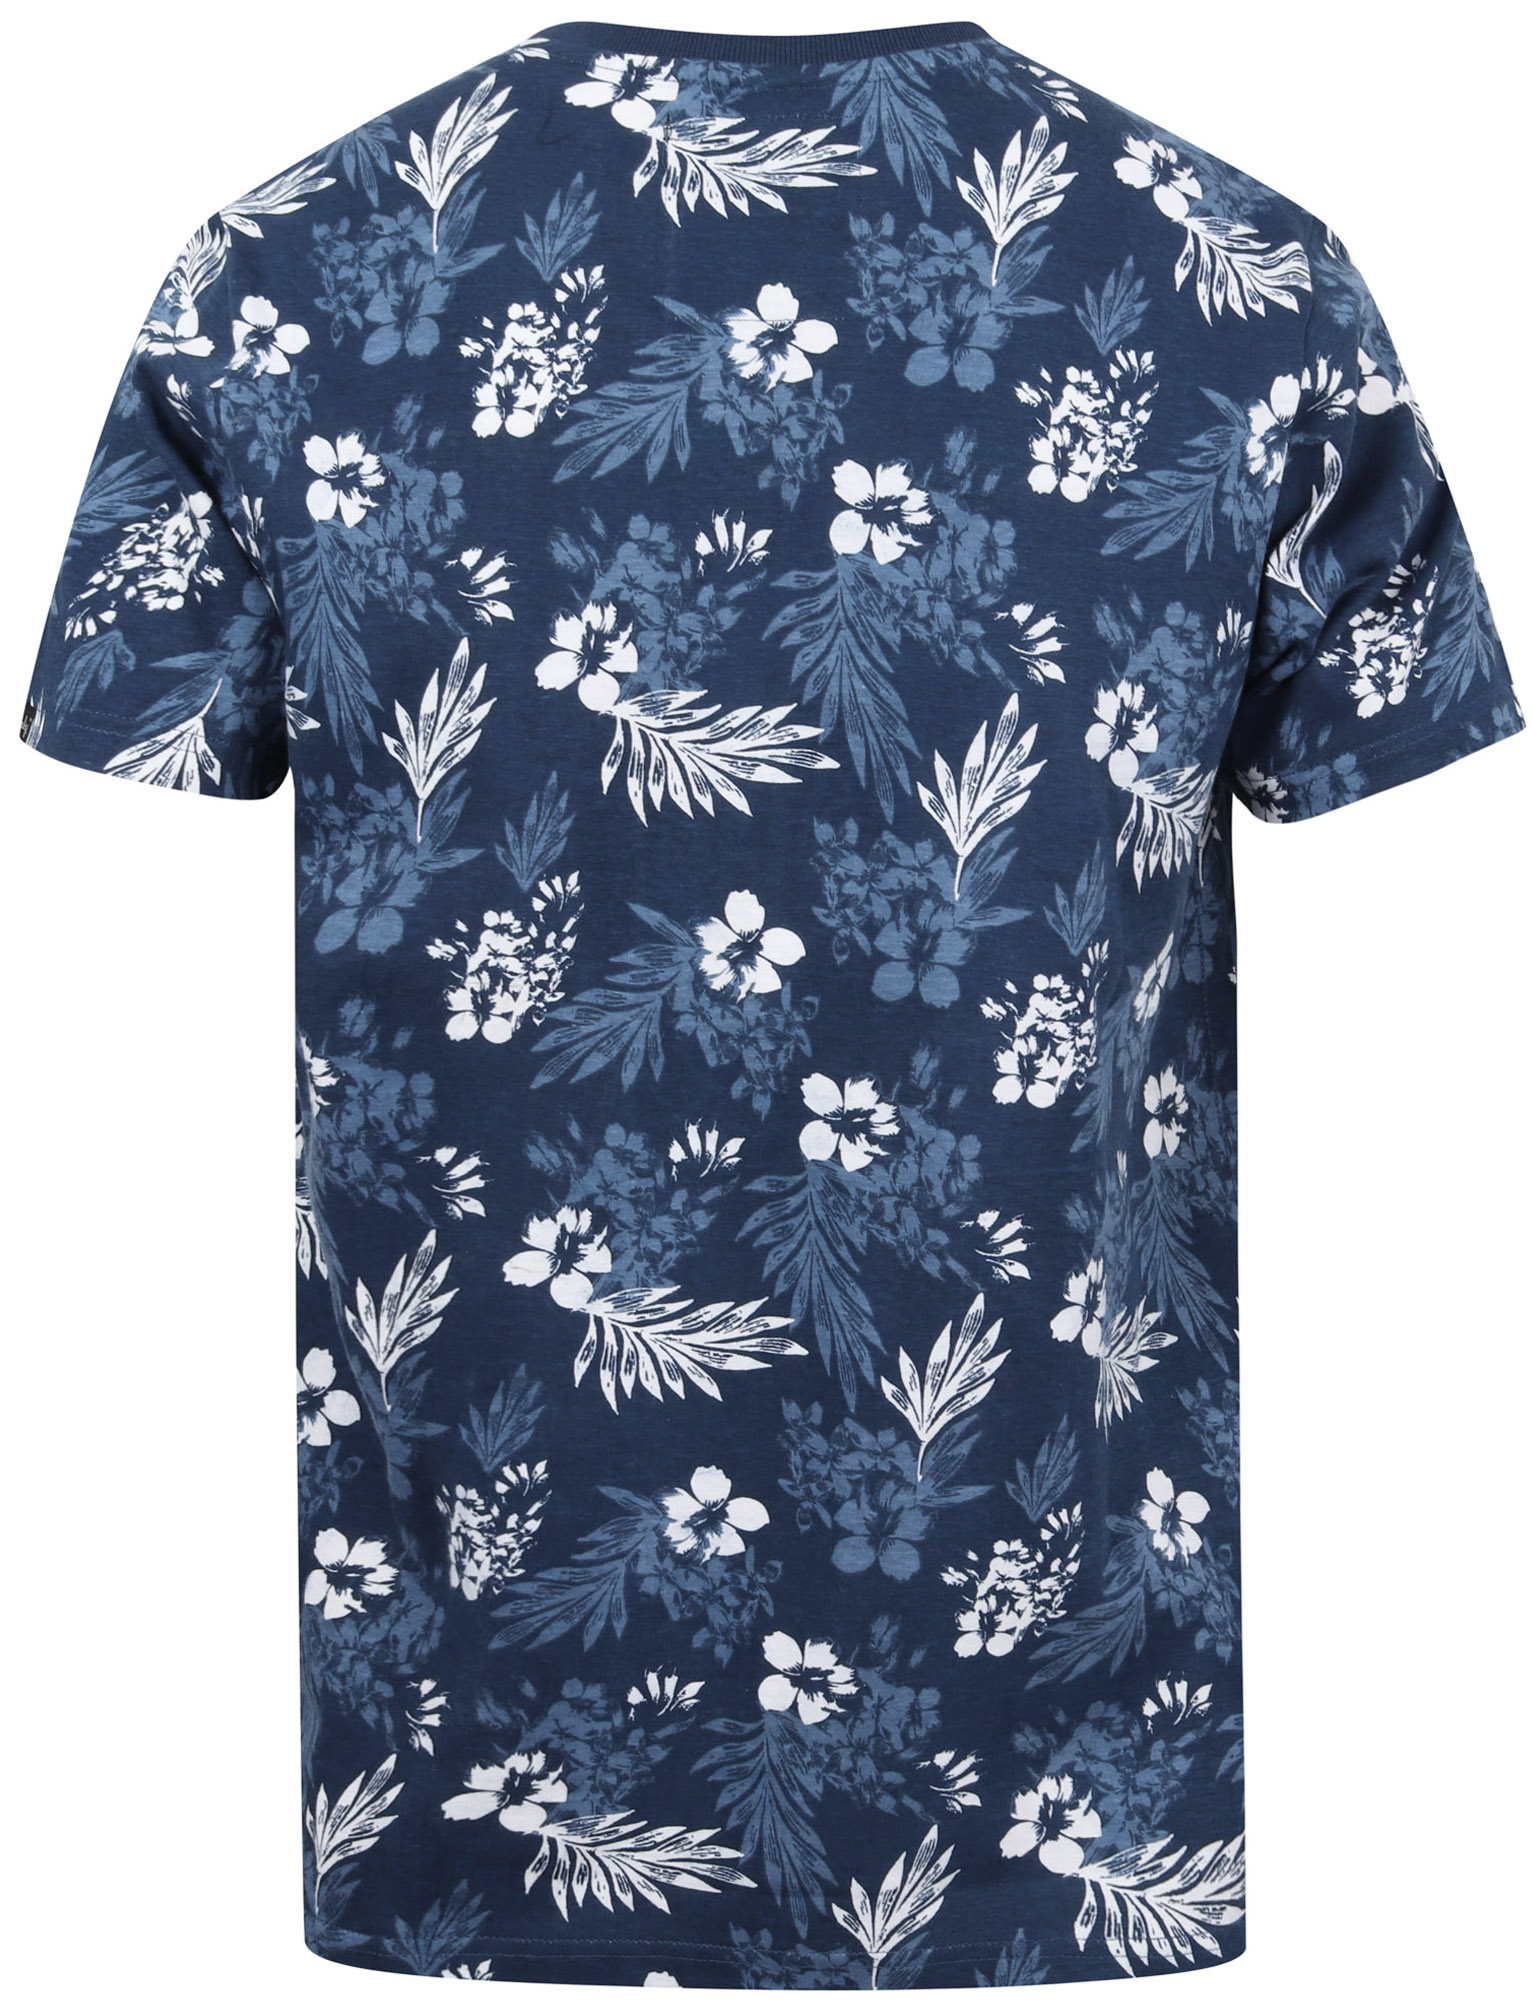 Tokyo-Laundry-Tropical-Print-Crew-Neck-T-Shirt-Hawaiian-Floral-Summer-Holiday thumbnail 38